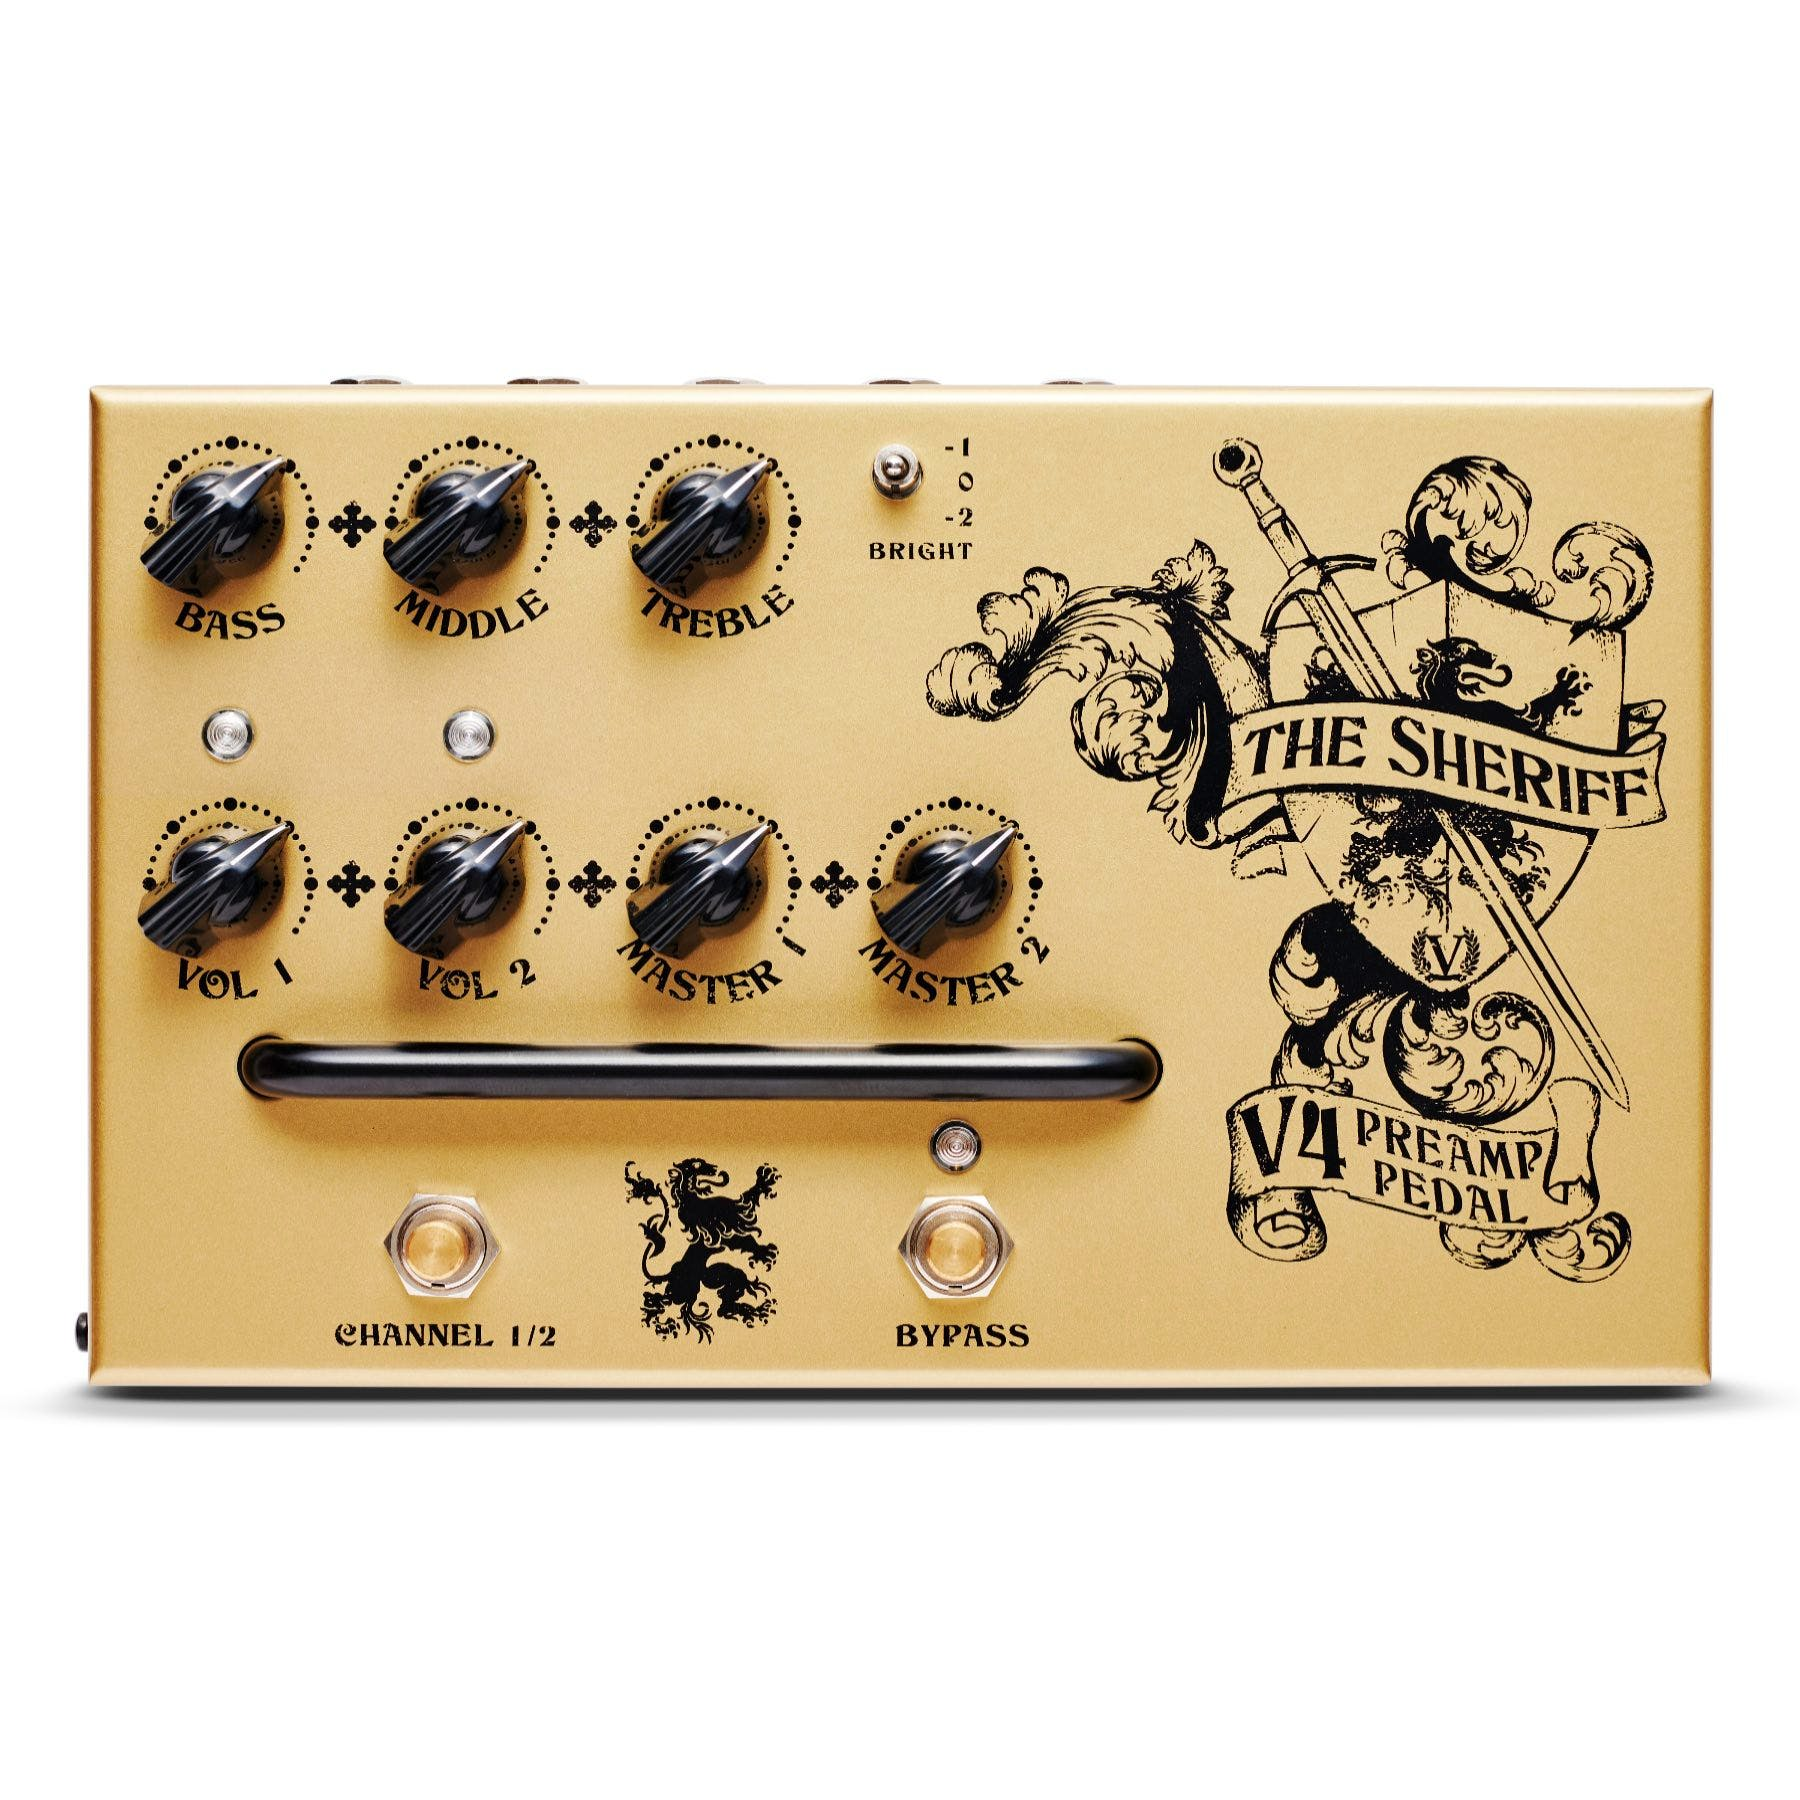 """Victory V4 'The Sheriff' Preamp Pedalfor{""""value"""":379.00,""""currency"""":""""GBP""""}"""